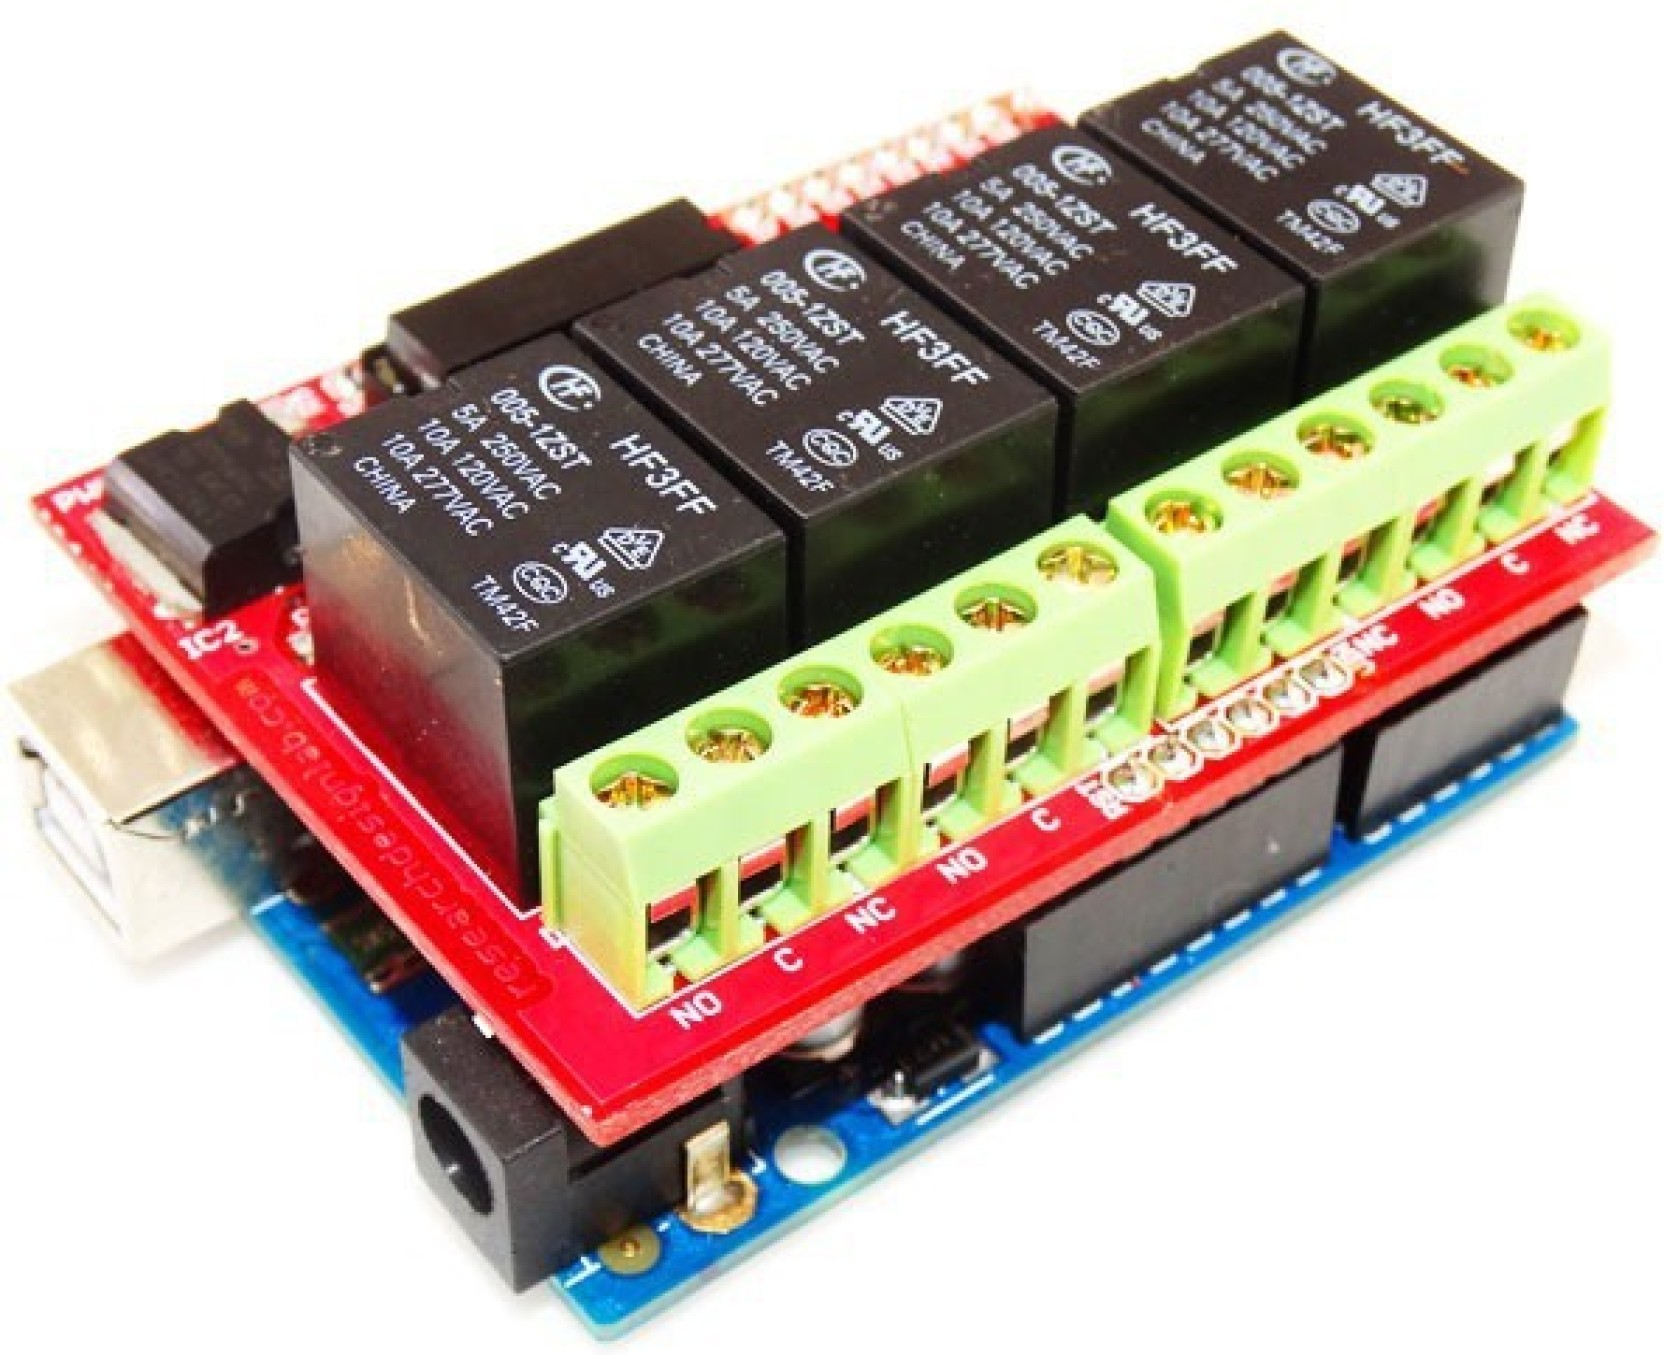 Rdl 4 Channel Relay Board 5v Compatible For Arduino Price In India Switch Buy Online Share